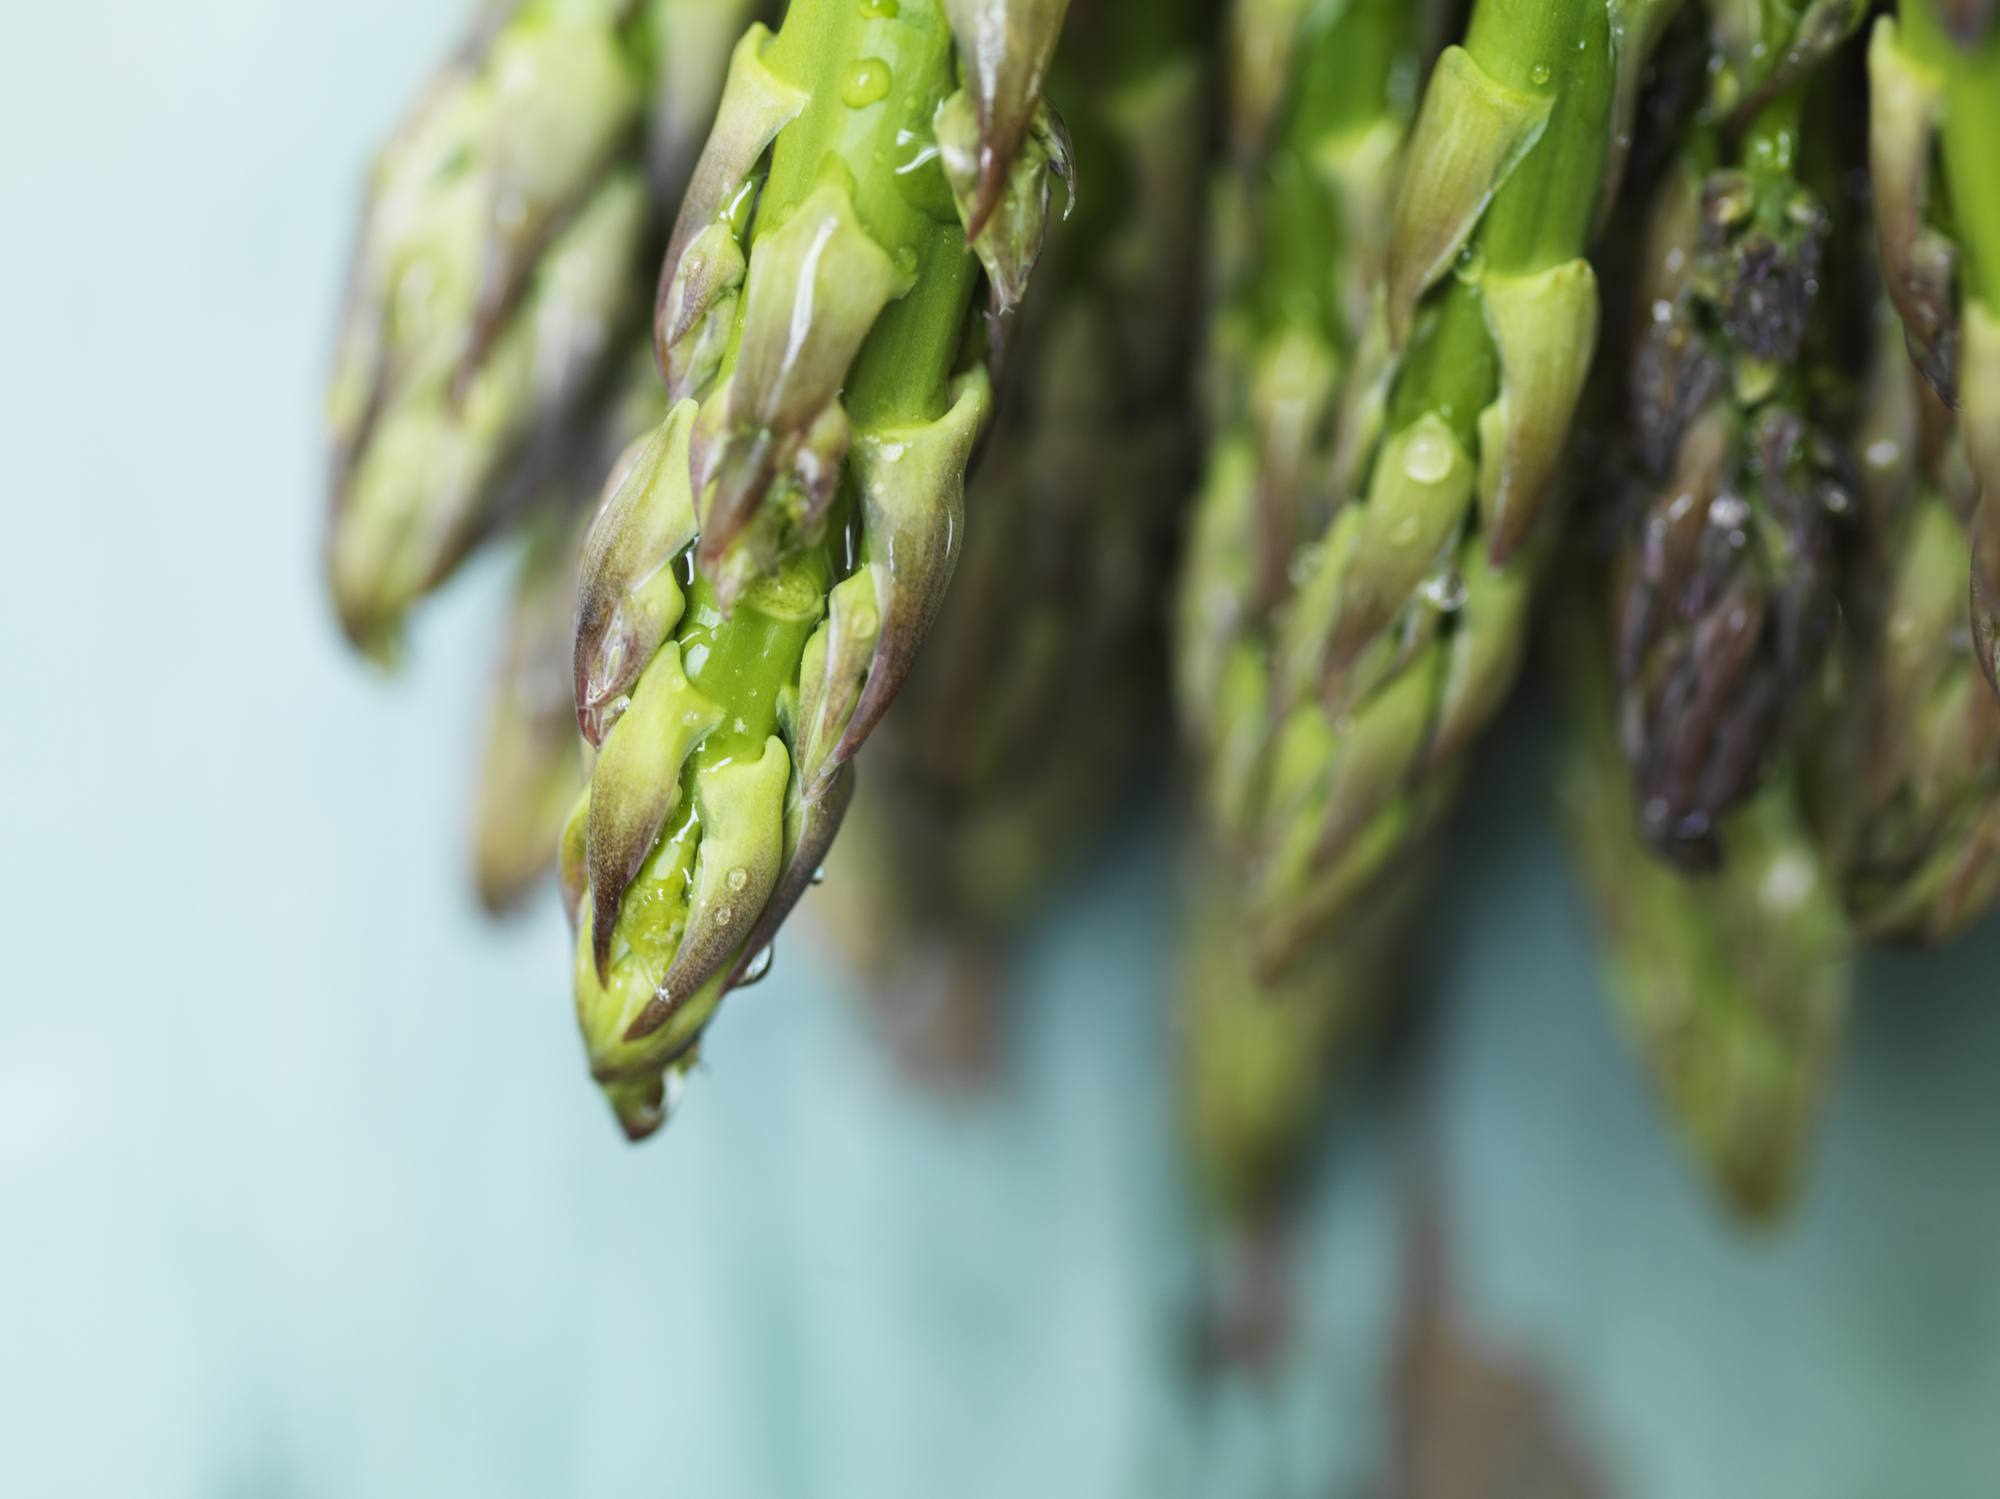 Fresh asparagus stacked in a pile